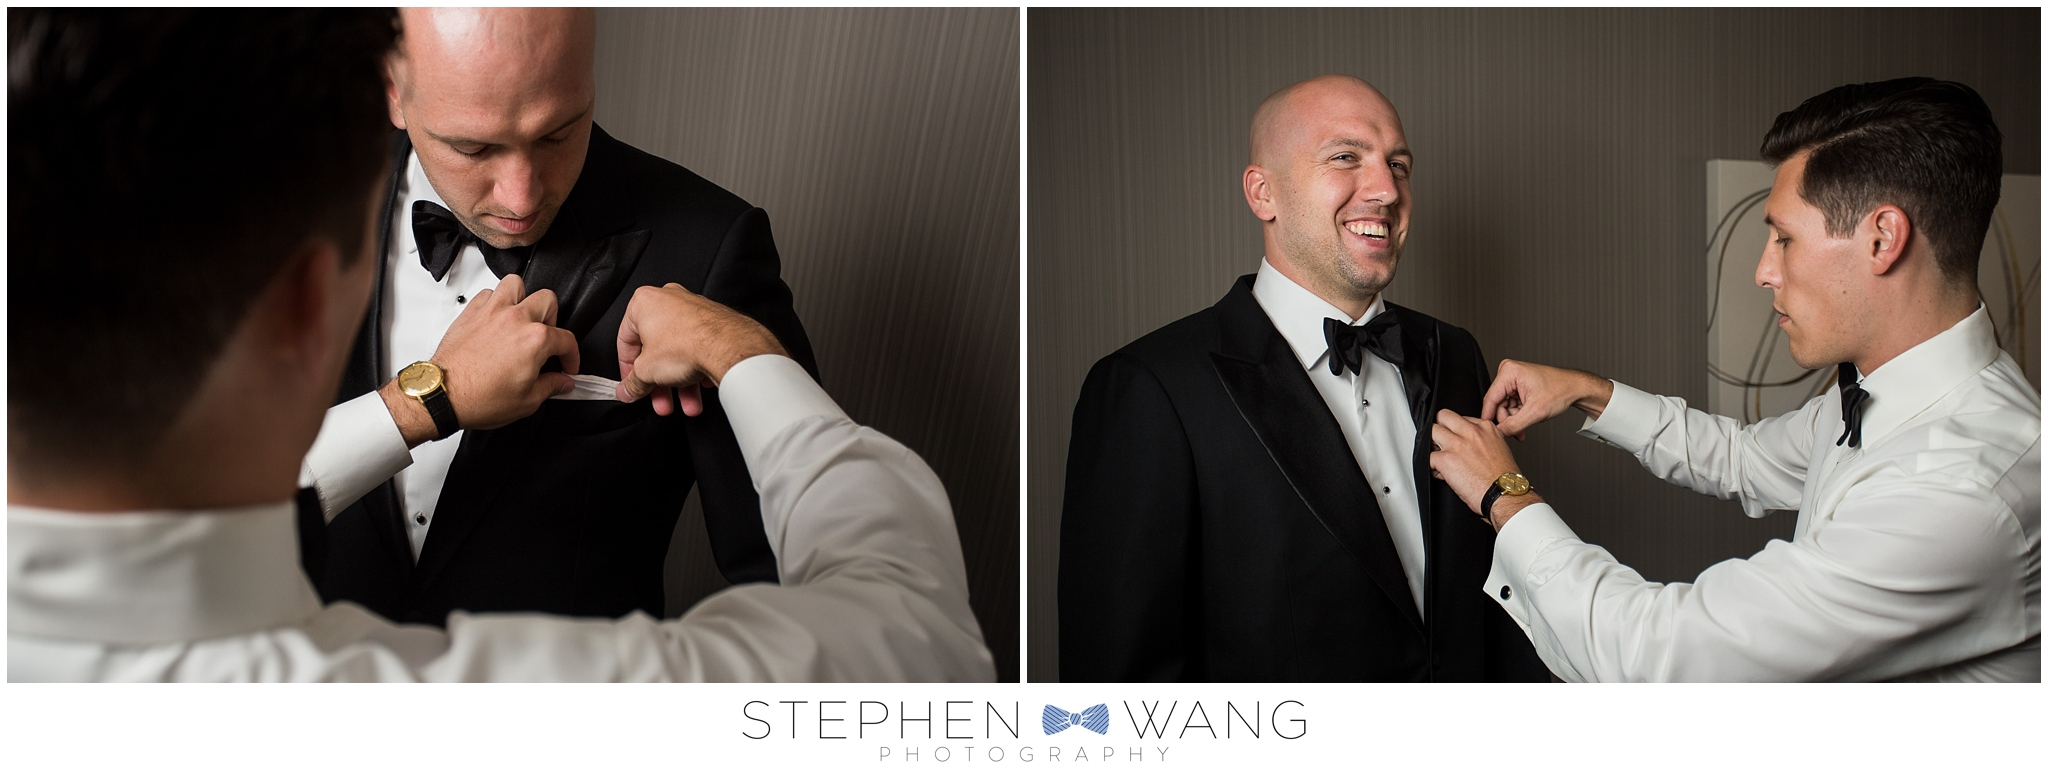 Stephen Wang Photography wedding photographer whitby castle wedding rye ny connecticut photographer philadlephia photographer pennsylvania wedding photographer bride and groom00008.jpg